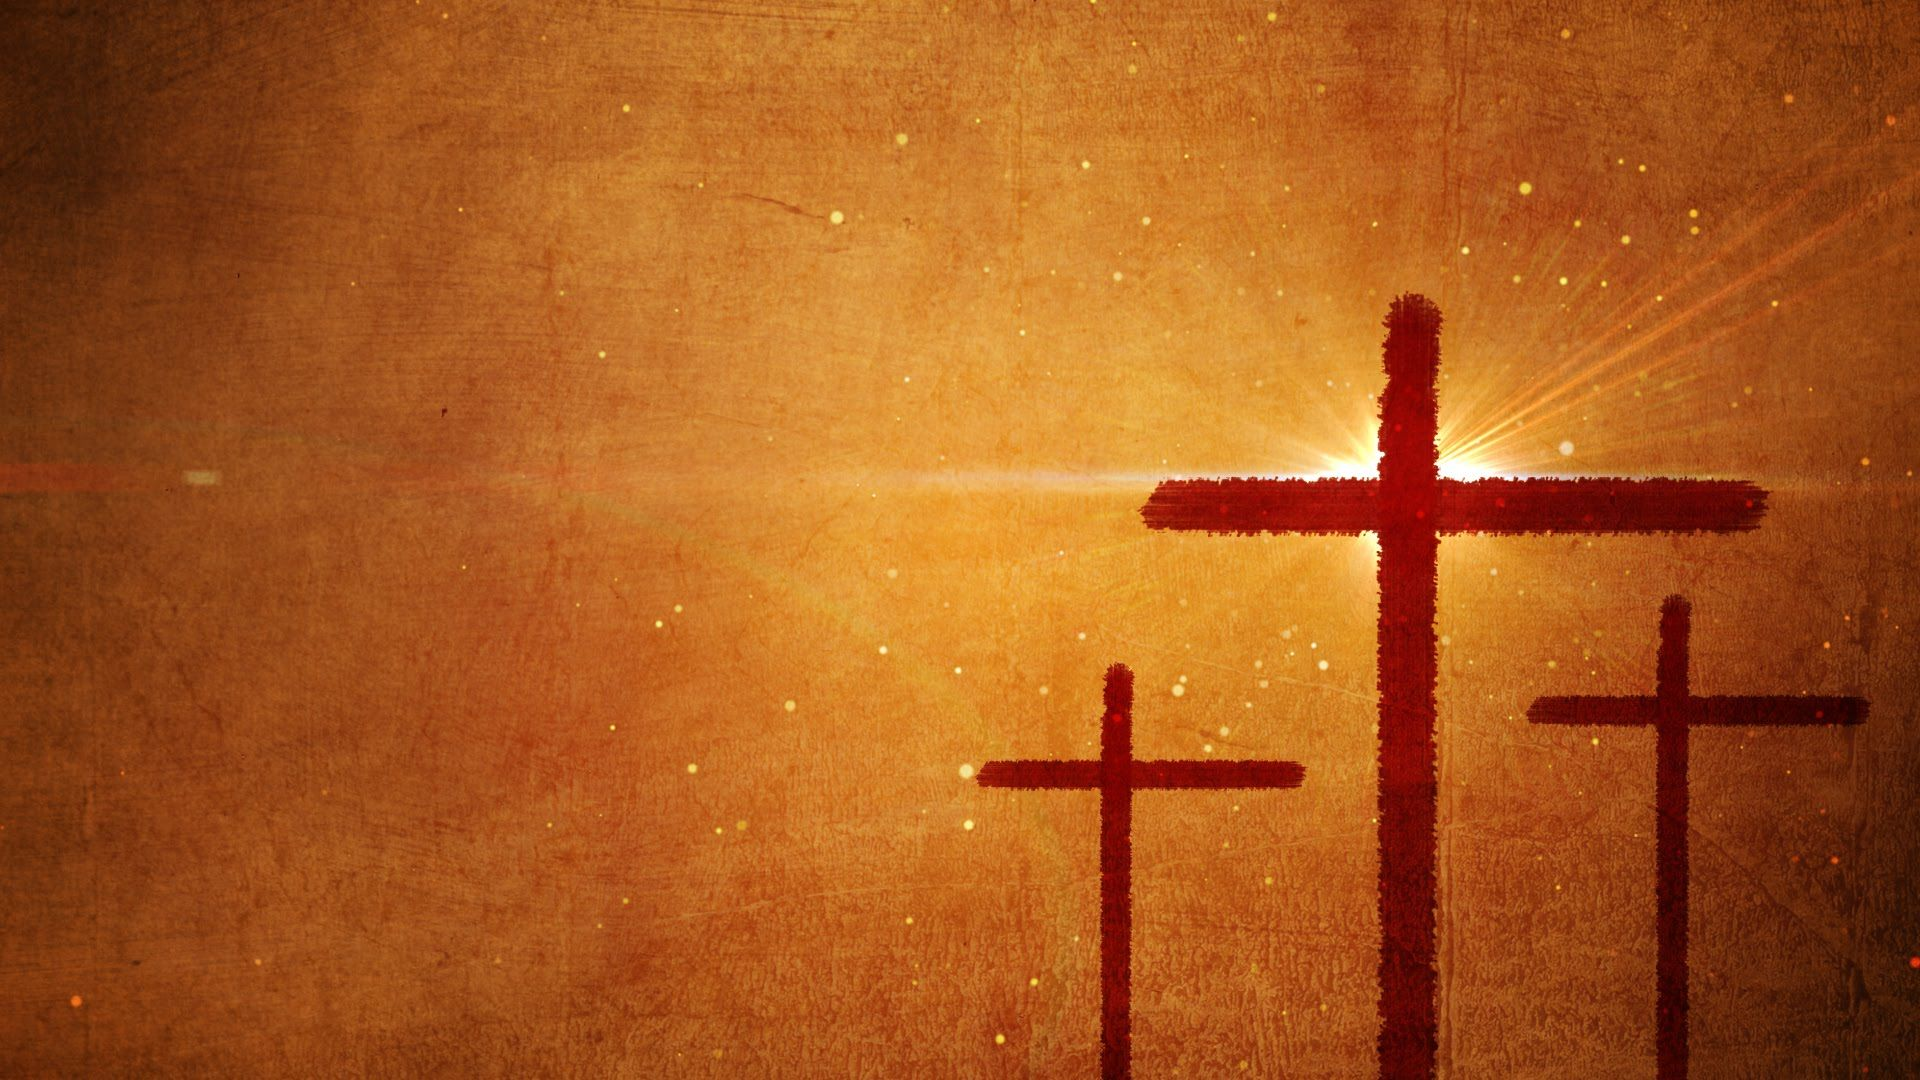 Easter Motion Background featuring 3 crosses. Download